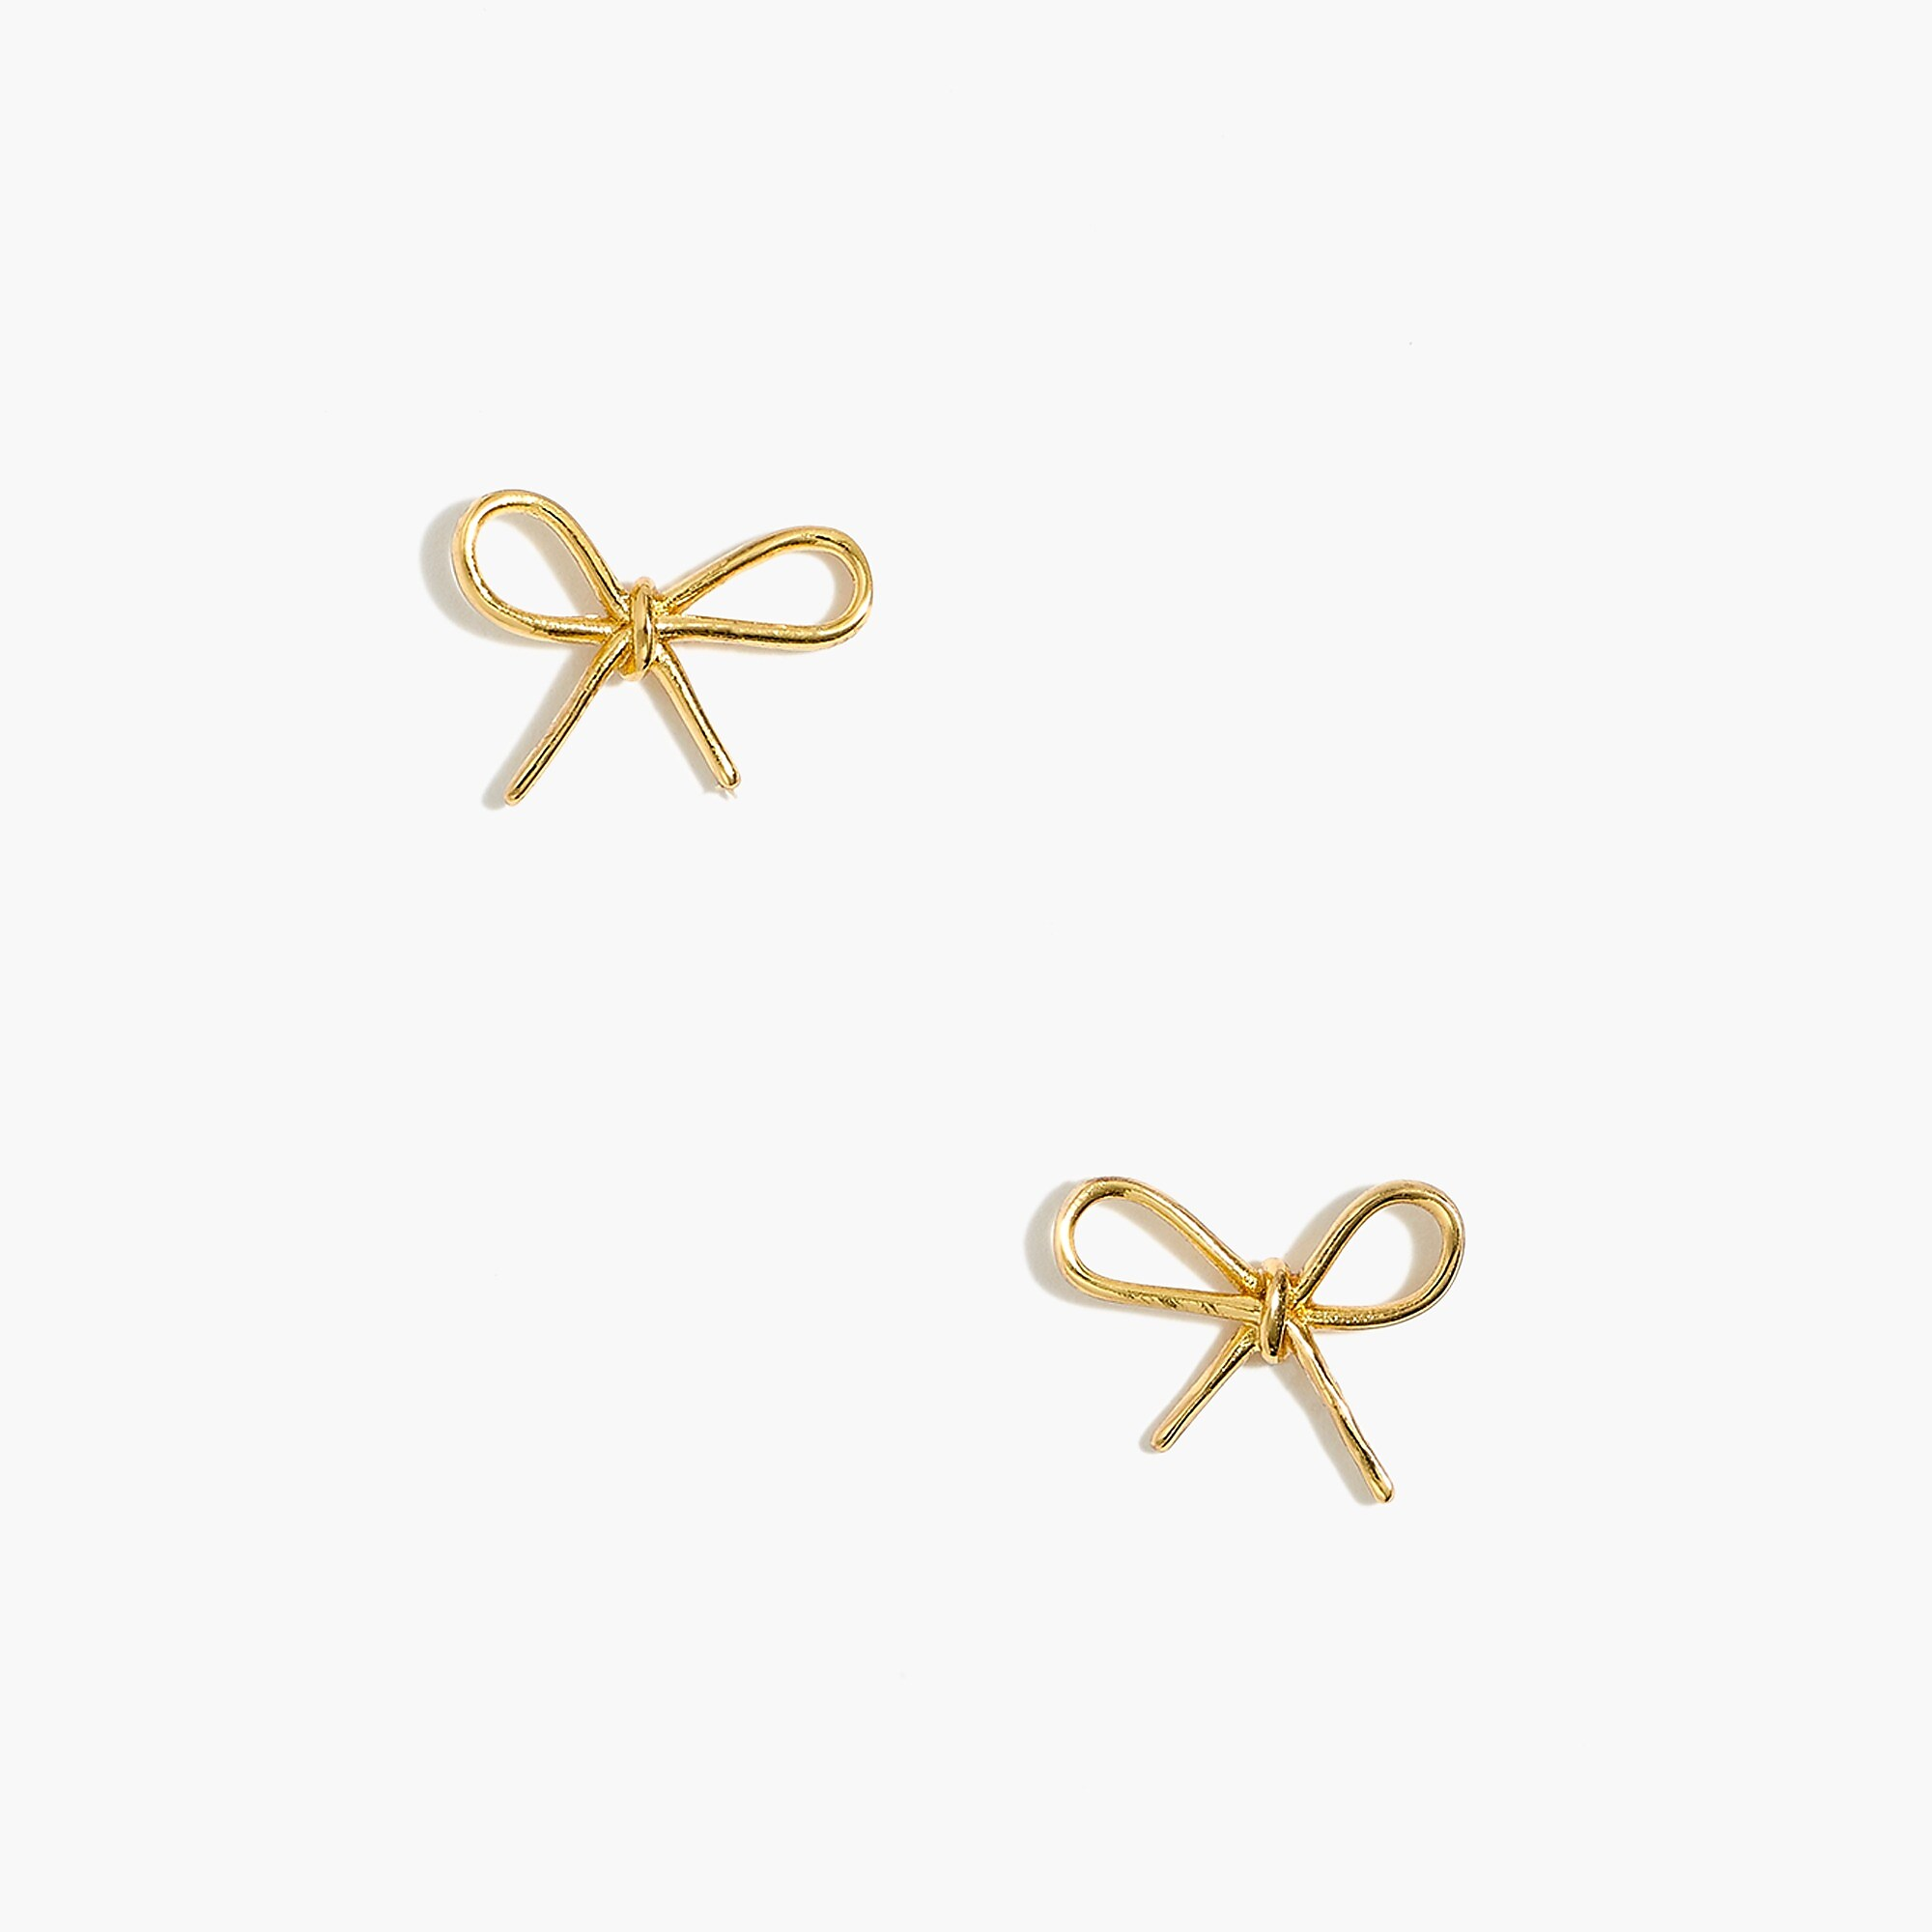 Golden Bow Stud Earrings